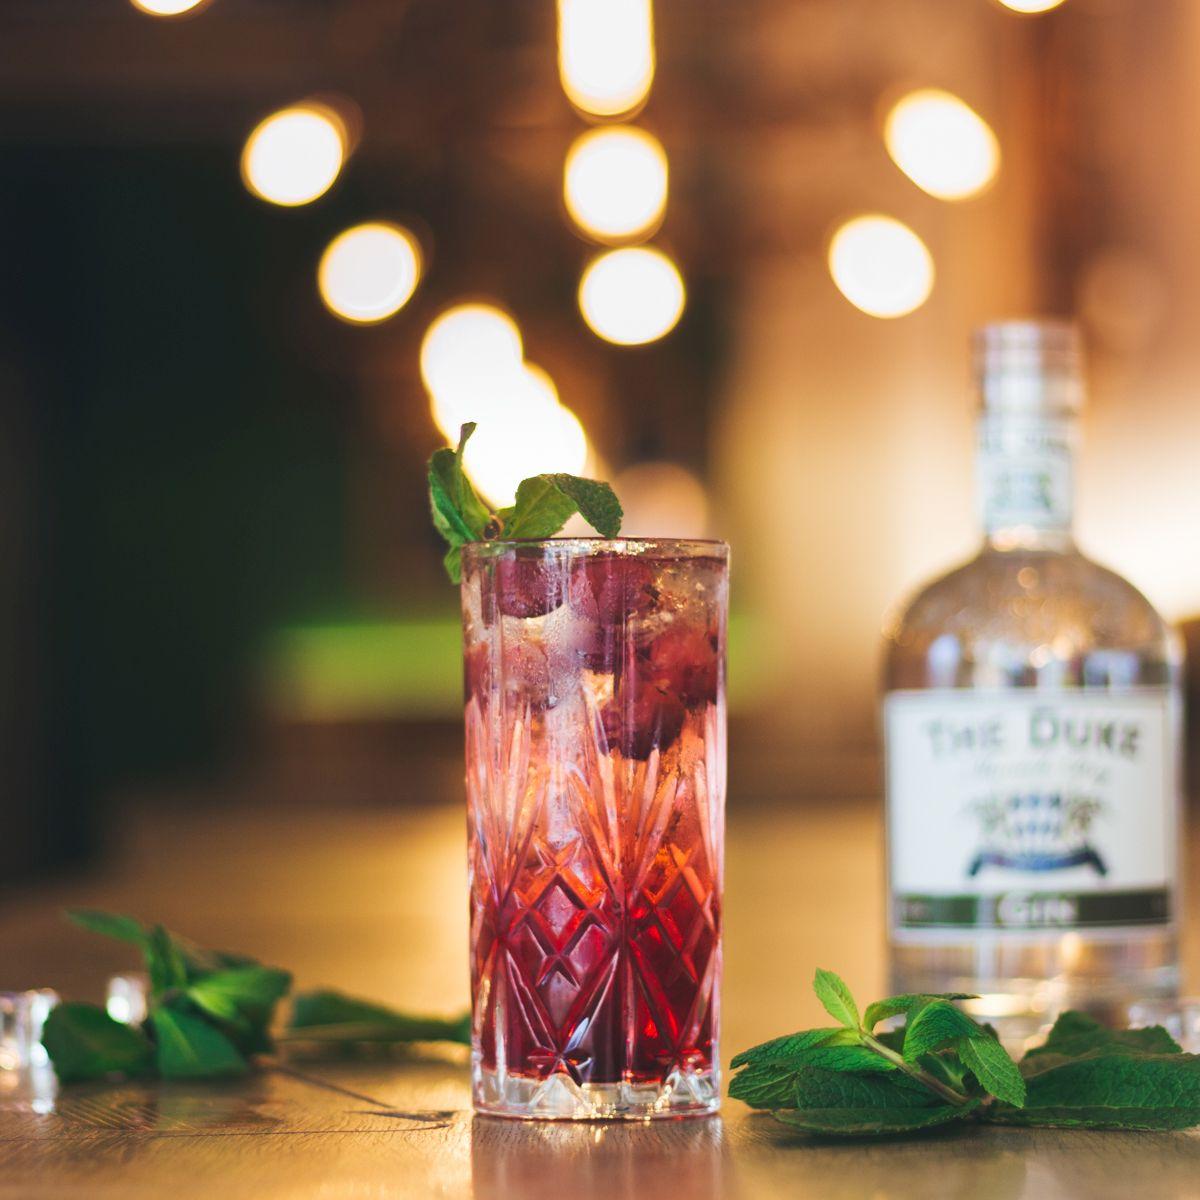 """Cherry Vanilla Kiss"" - Platz 2 der THE DUKE Cocktail Competition"